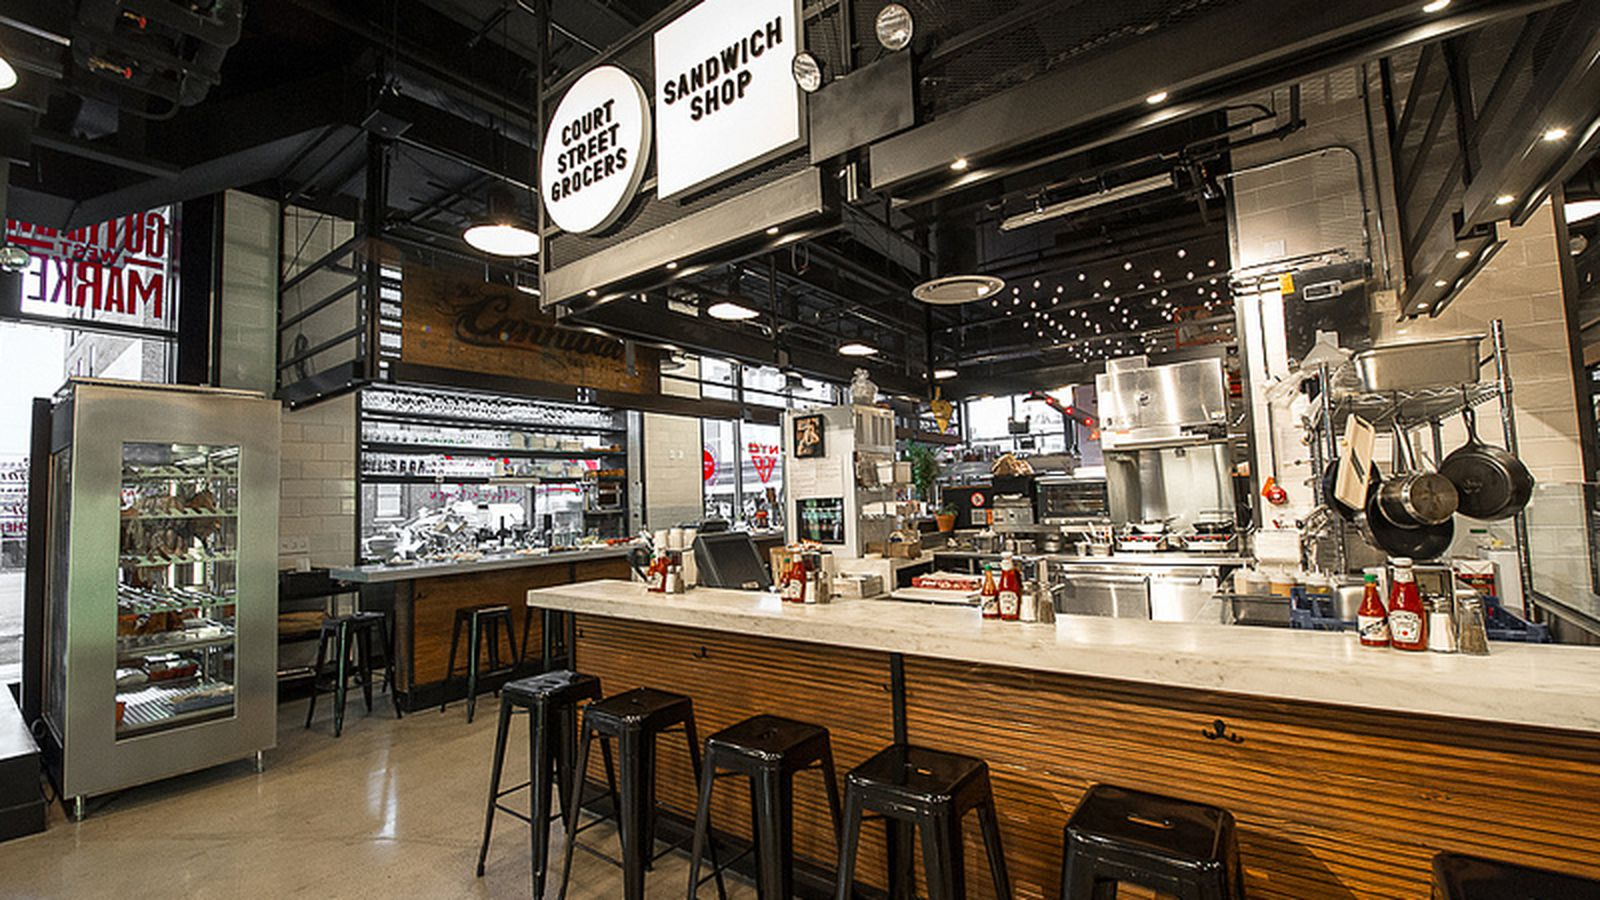 La Cucina Mexicali Plaza Tec The 23 Most Anticipated Food Halls In The Country Eater